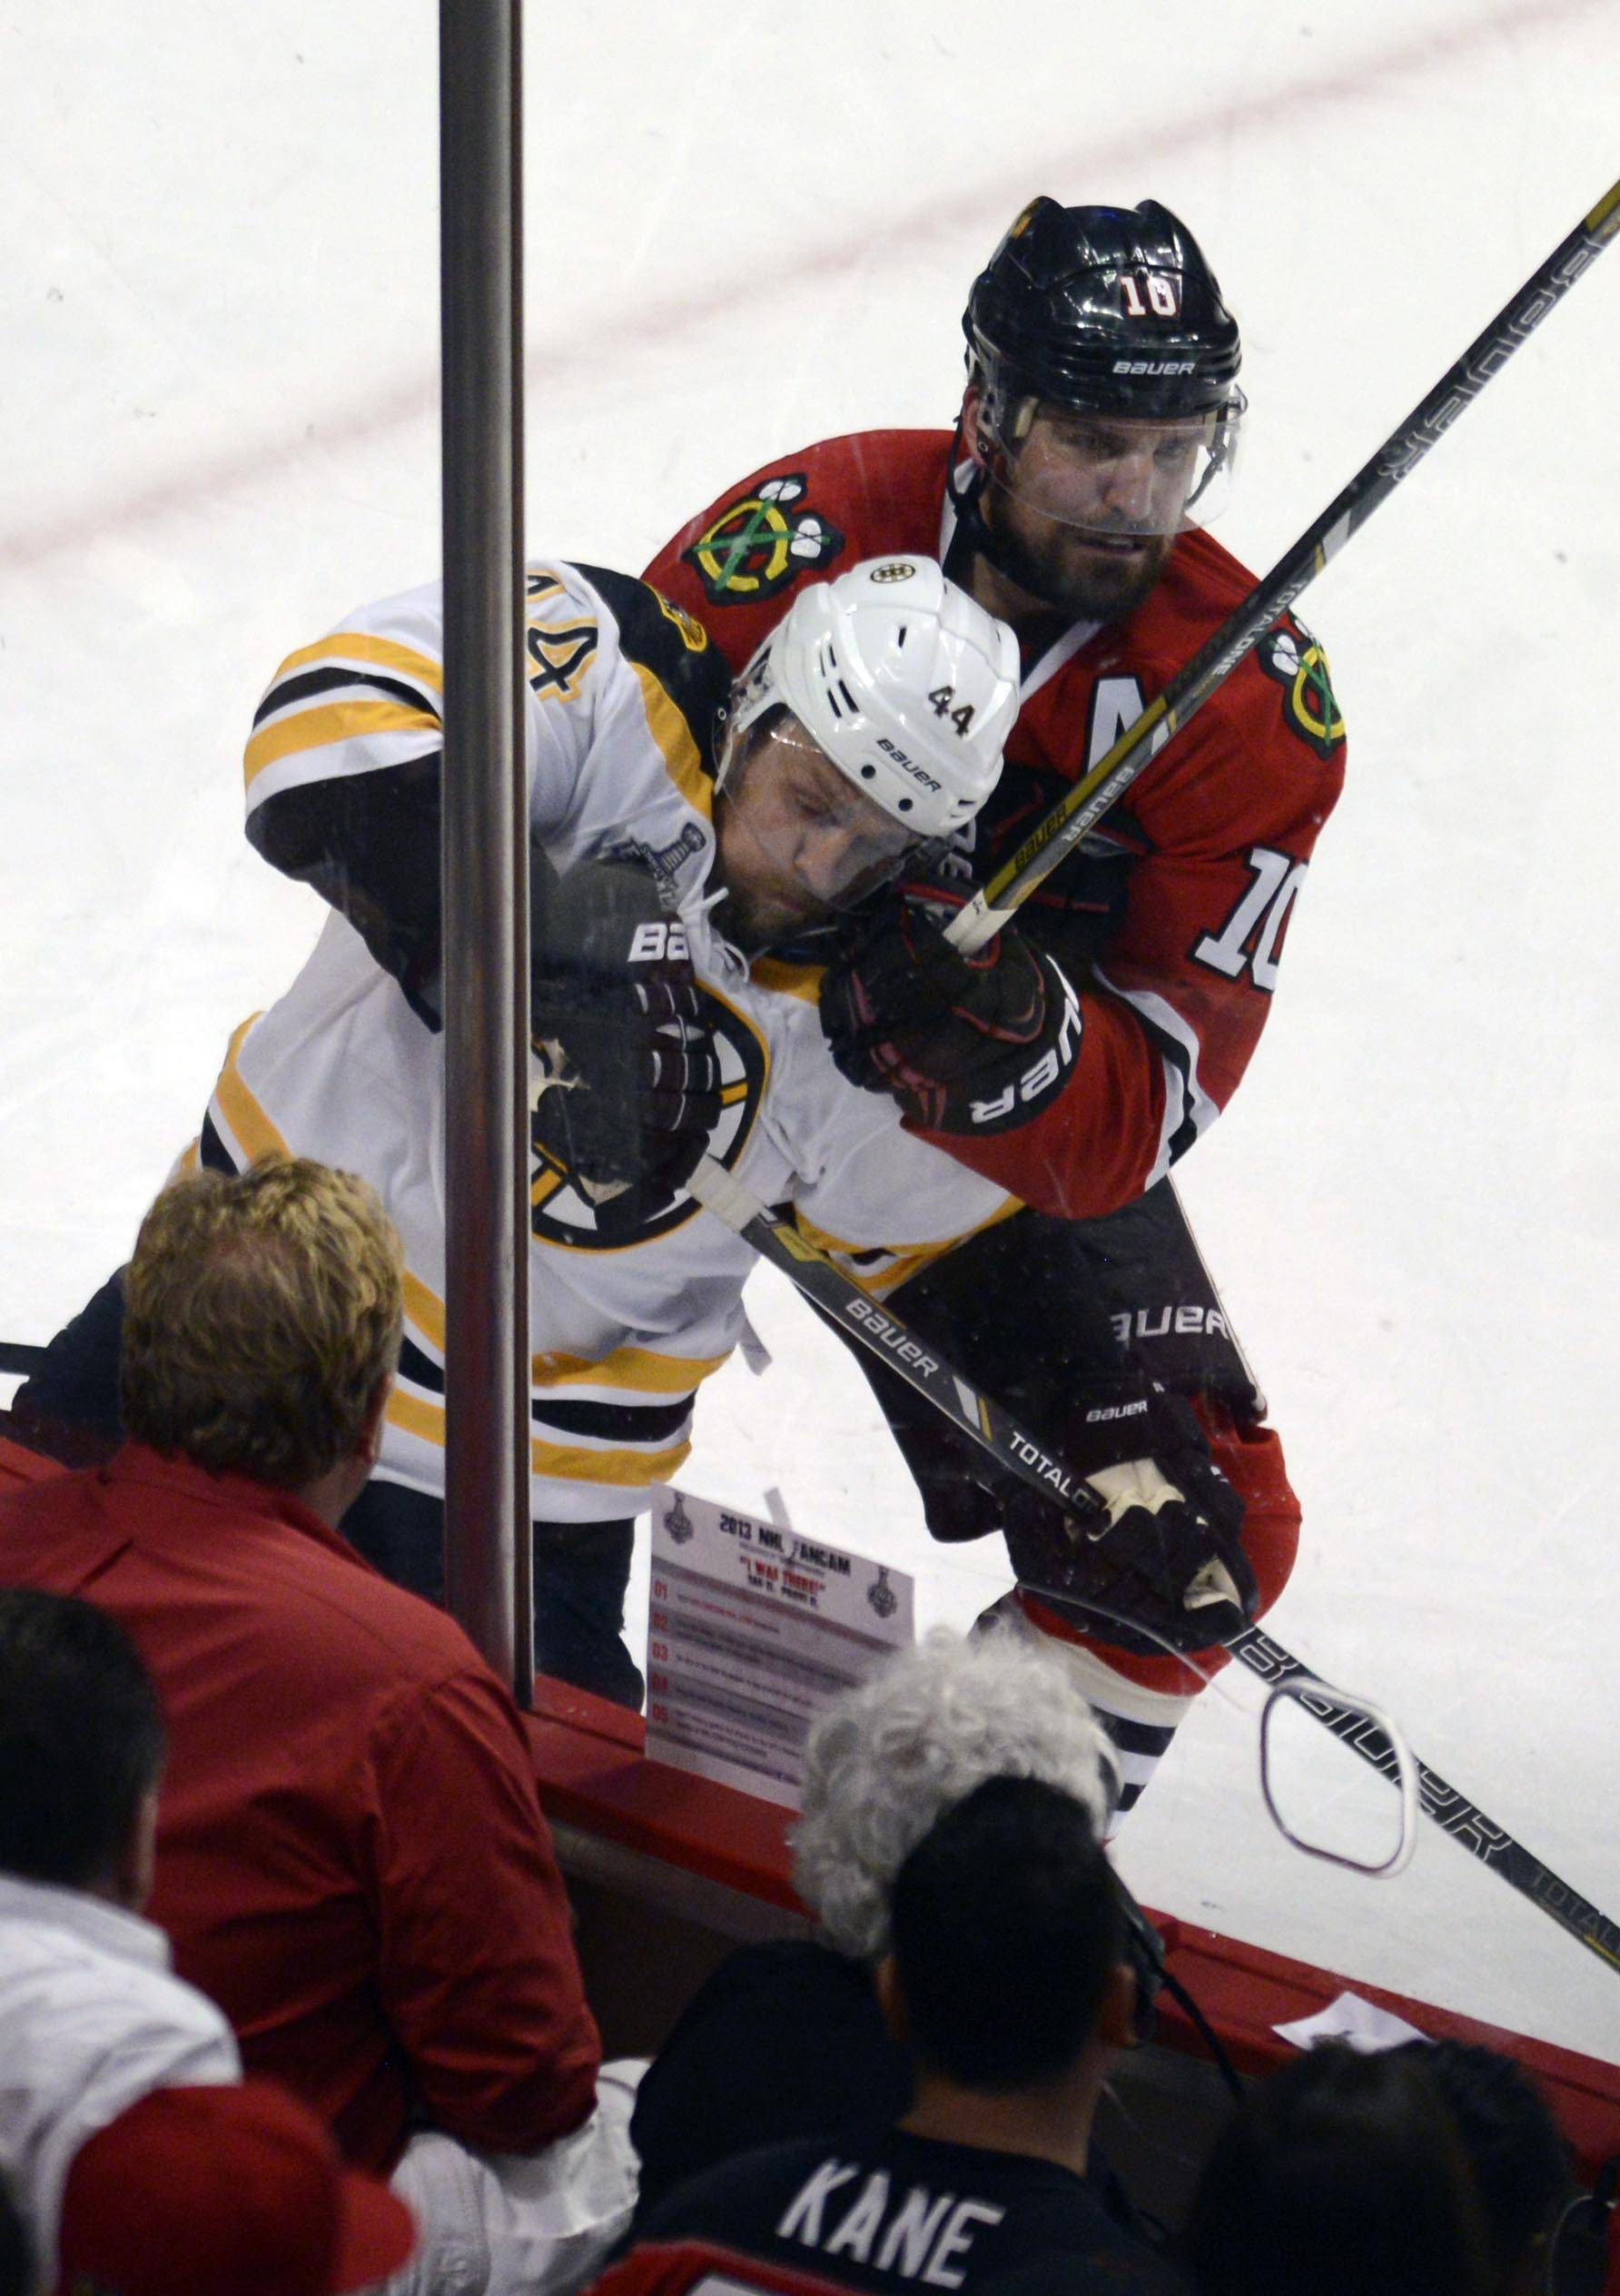 Chicago Blackhawks center Patrick Sharp and Boston Bruins defenseman Dennis Seidenberg fight on the boards in the third period during Game 1 of the Stanley Cup Finals Wednesday at the Untied Center in Chicago.